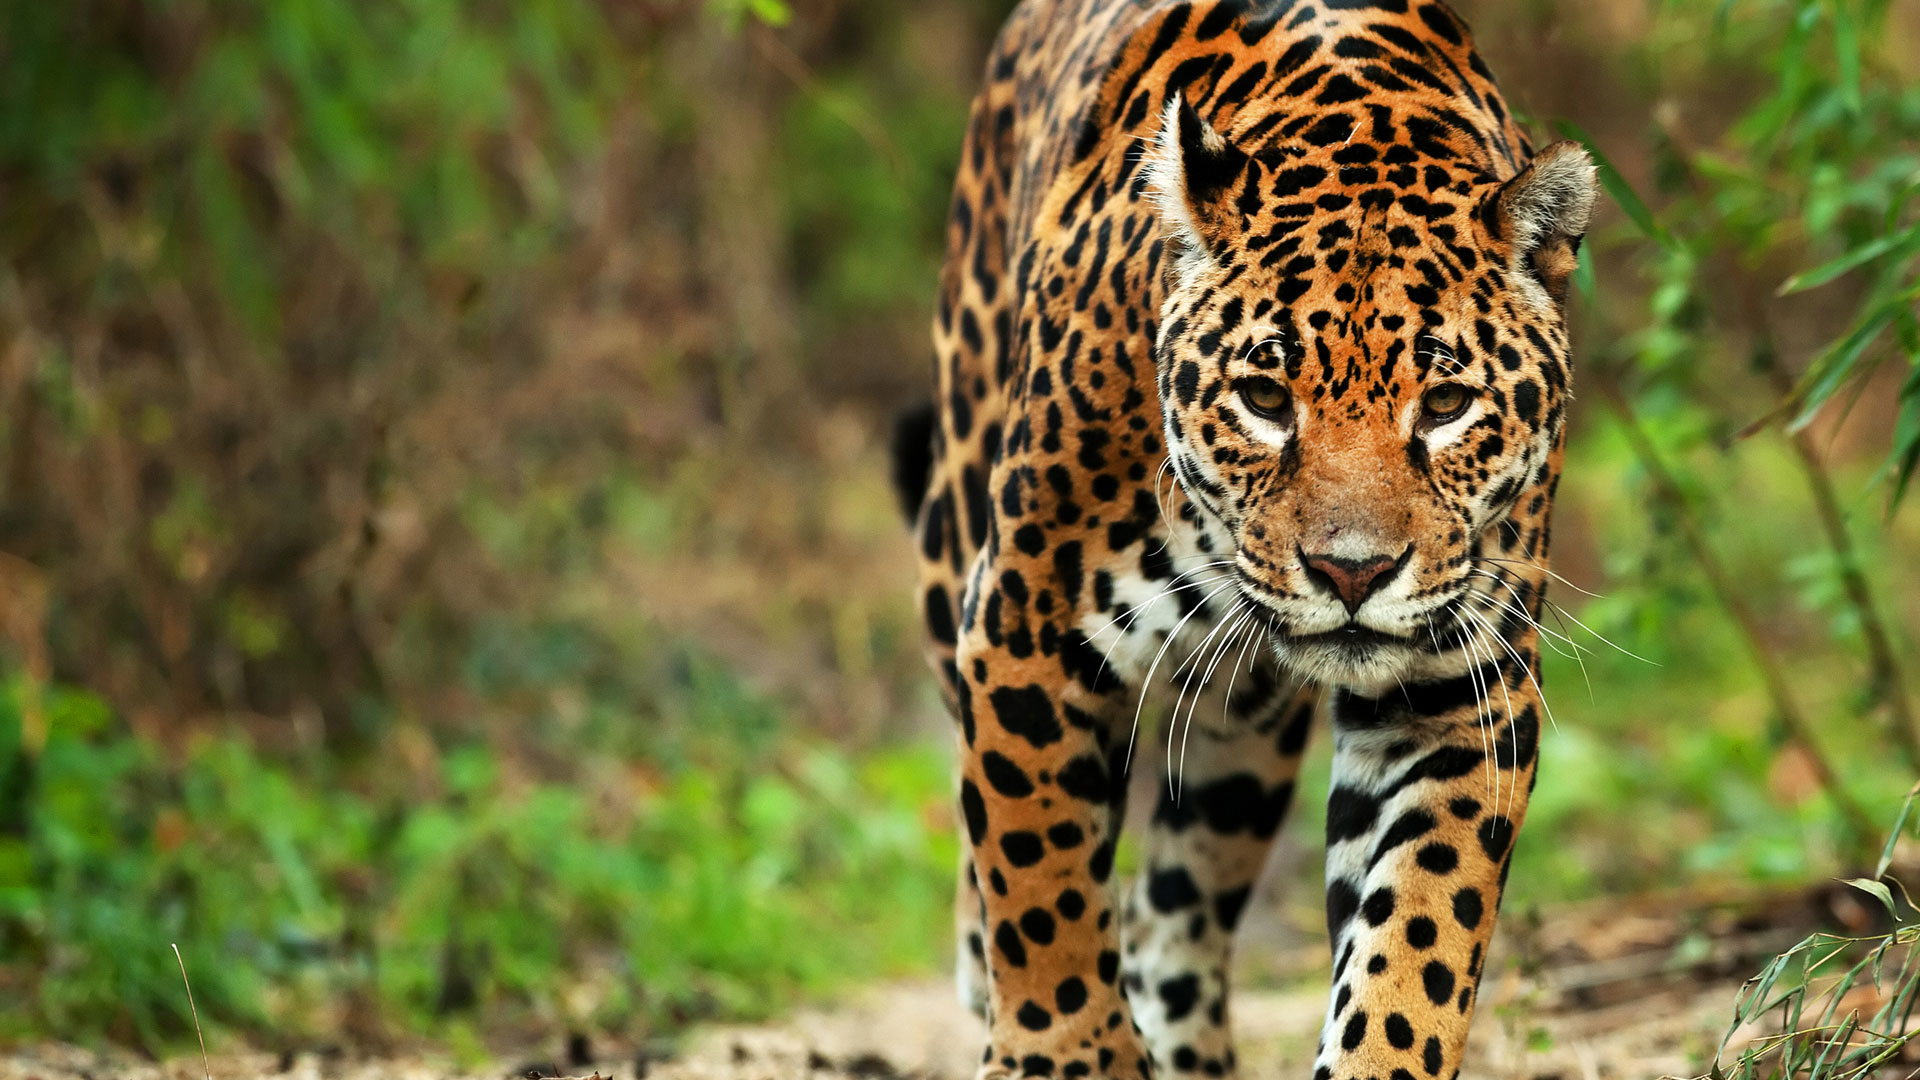 Images of Jaguar | 1920x1080